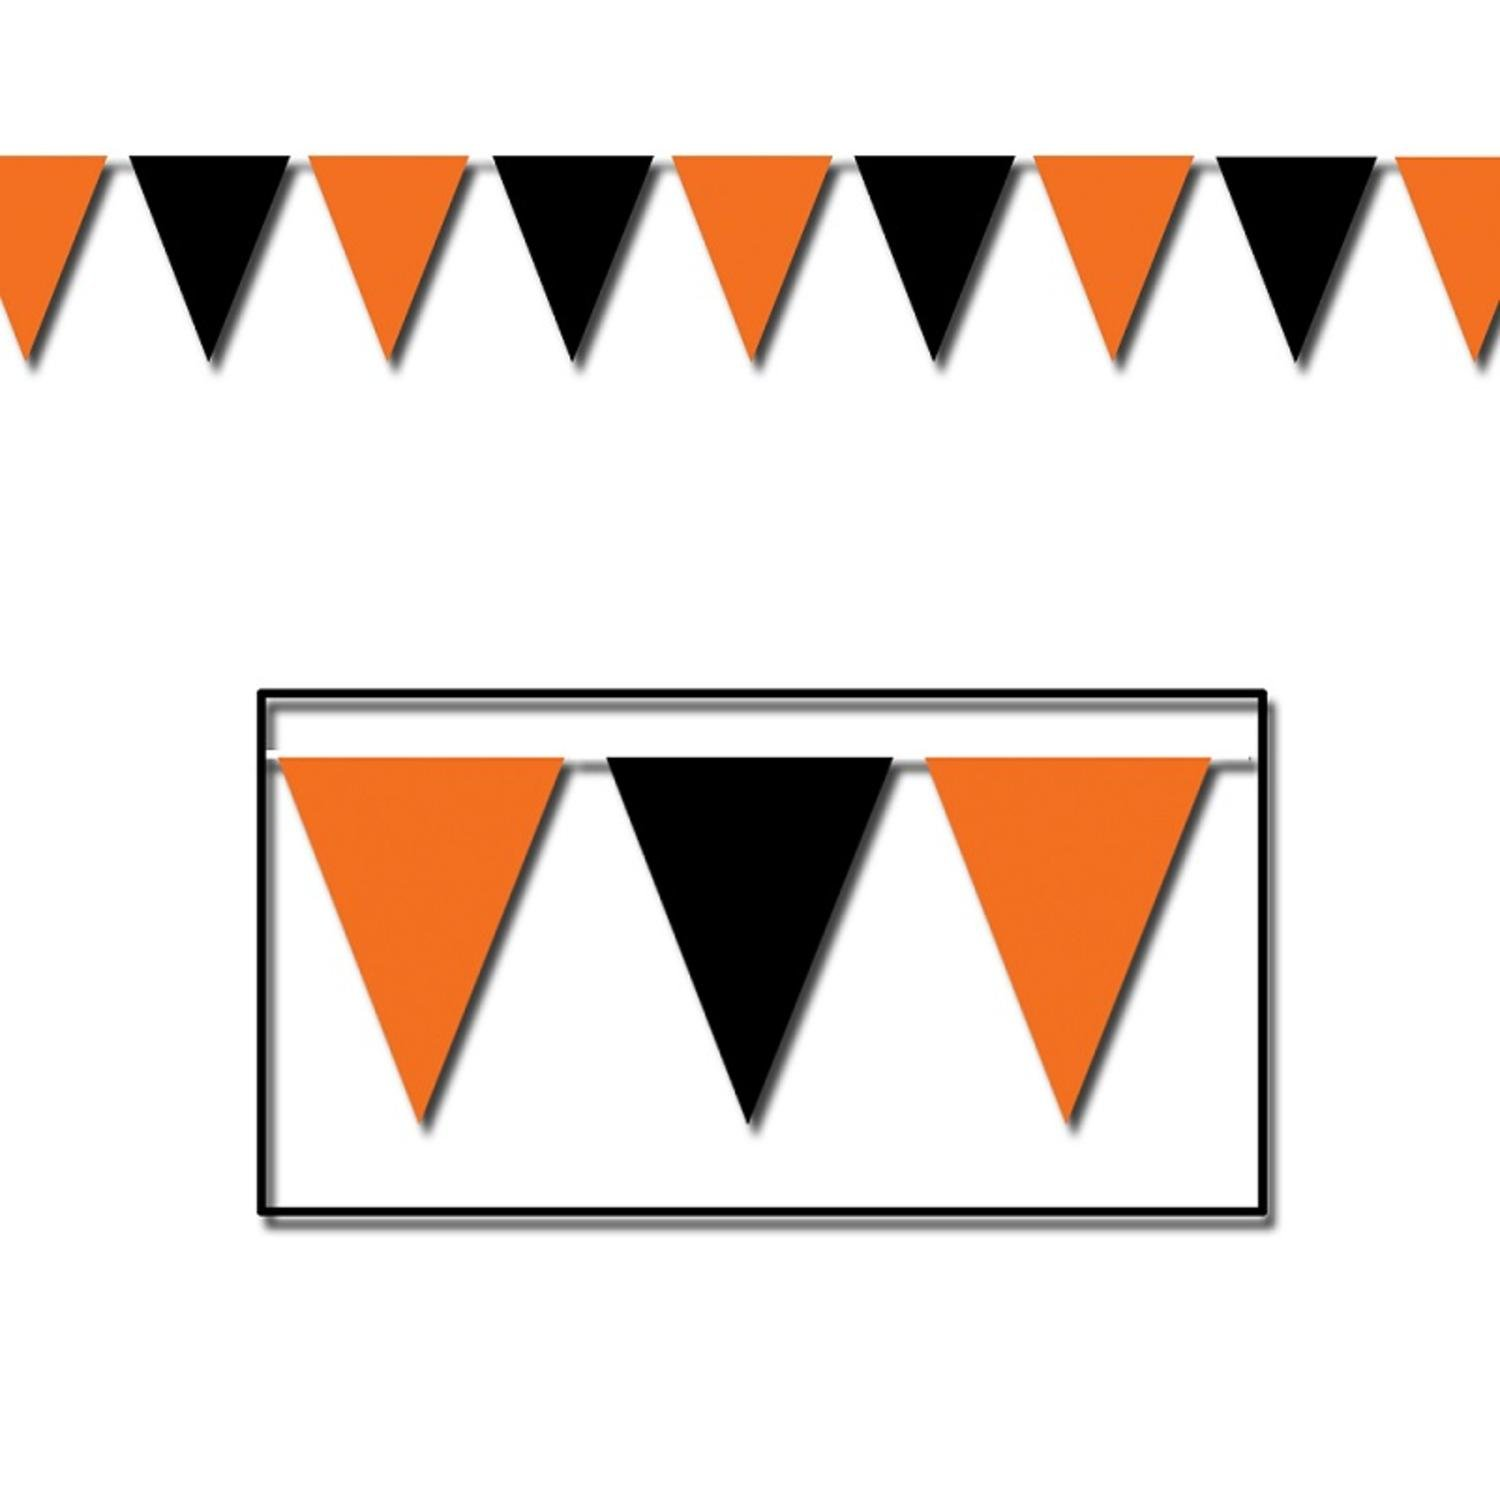 Club Pack of 12 Orange & Black Pennant Banner Halloween Party Decorations 30' x 17''